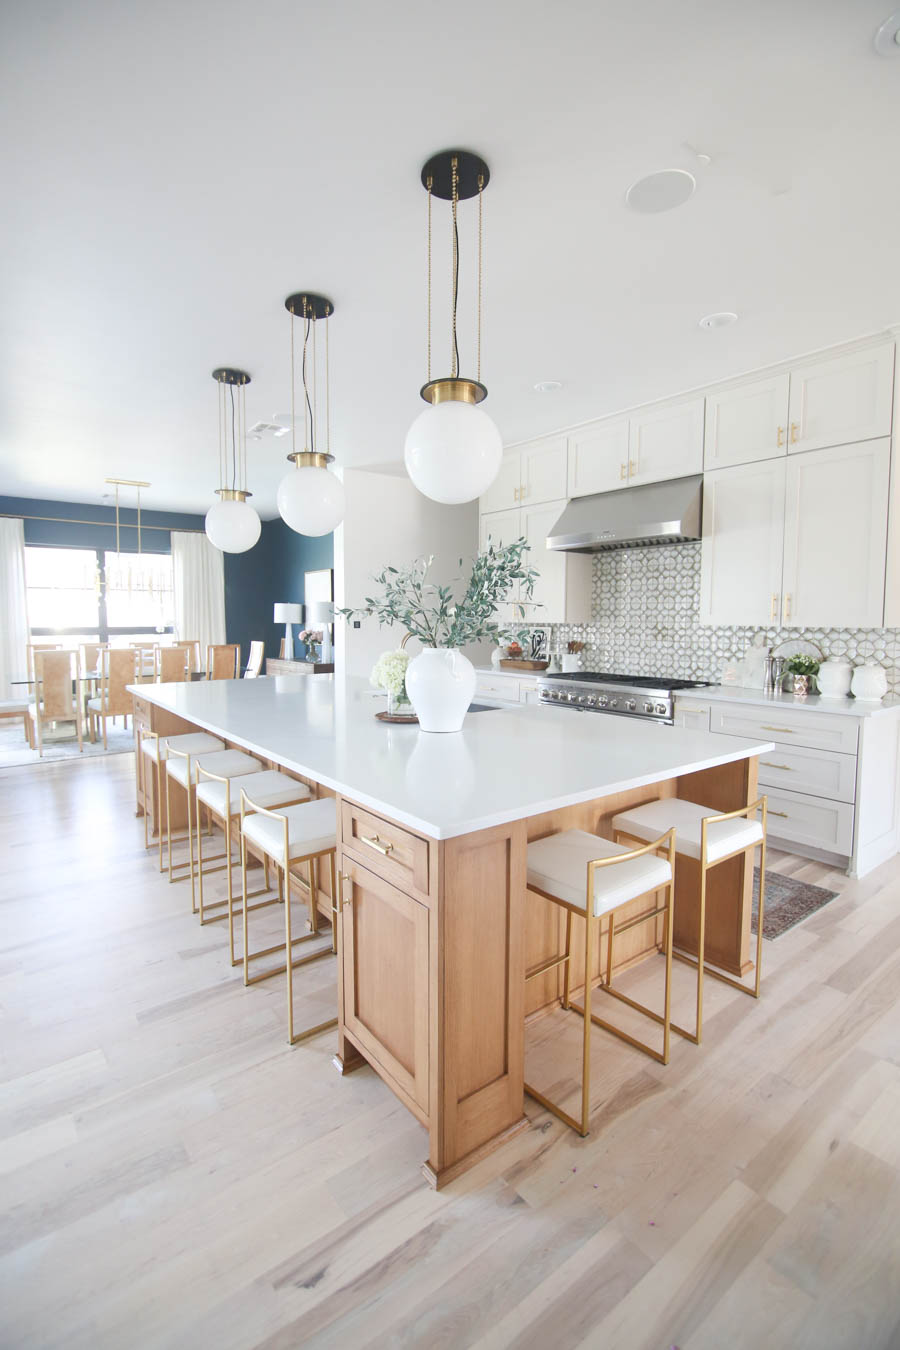 Cc And Mike Kitchen Remodel Reveal Large Natural Wood Island With Quartz Countertops And Gold Bar Stools 35 Cc Mike